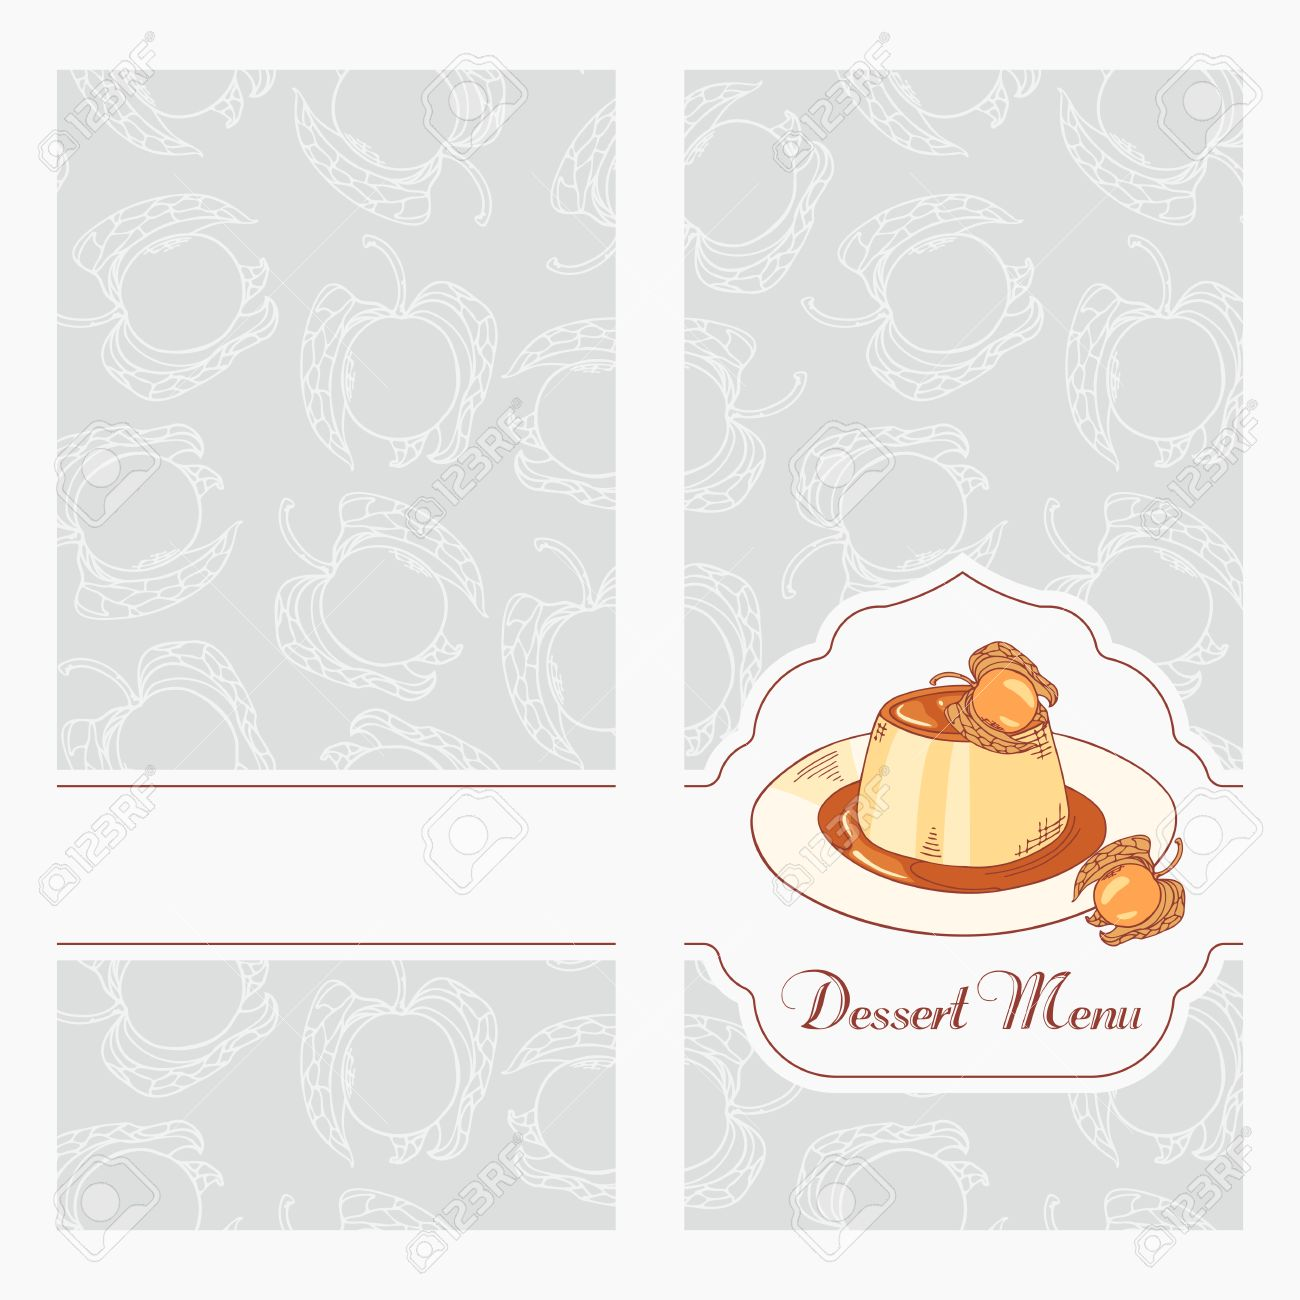 Dessert Menu Template Design For Cafe. Creme Caramel On Plate In Vector.  Sketched Food  Dessert Menu Template